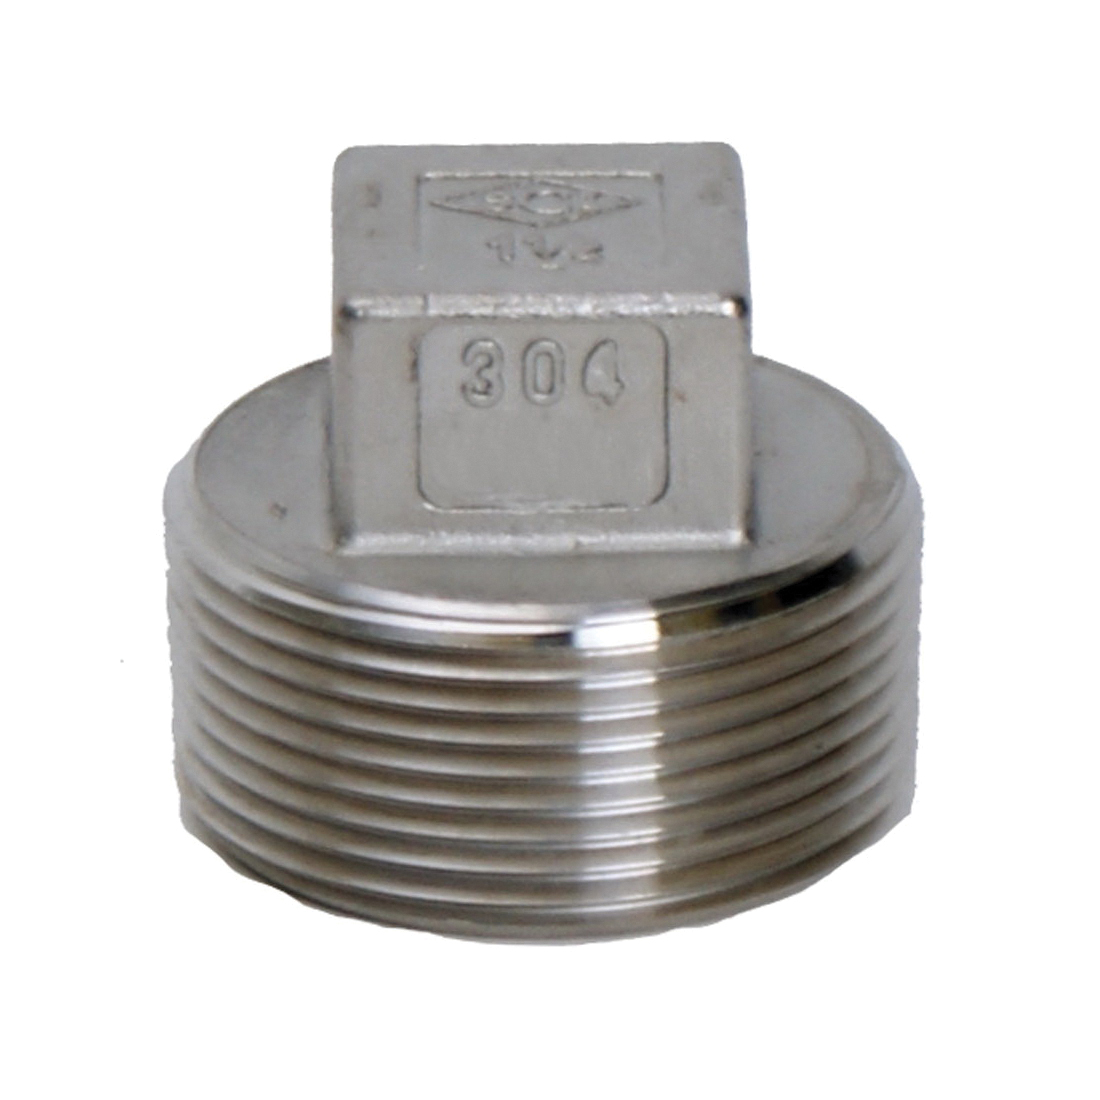 Smith-Cooper® S3114SP012 S3014SP Square Head Plug, 1-1/4 in Nominal, FNPT End Style, 150 lb, 304 Stainless Steel